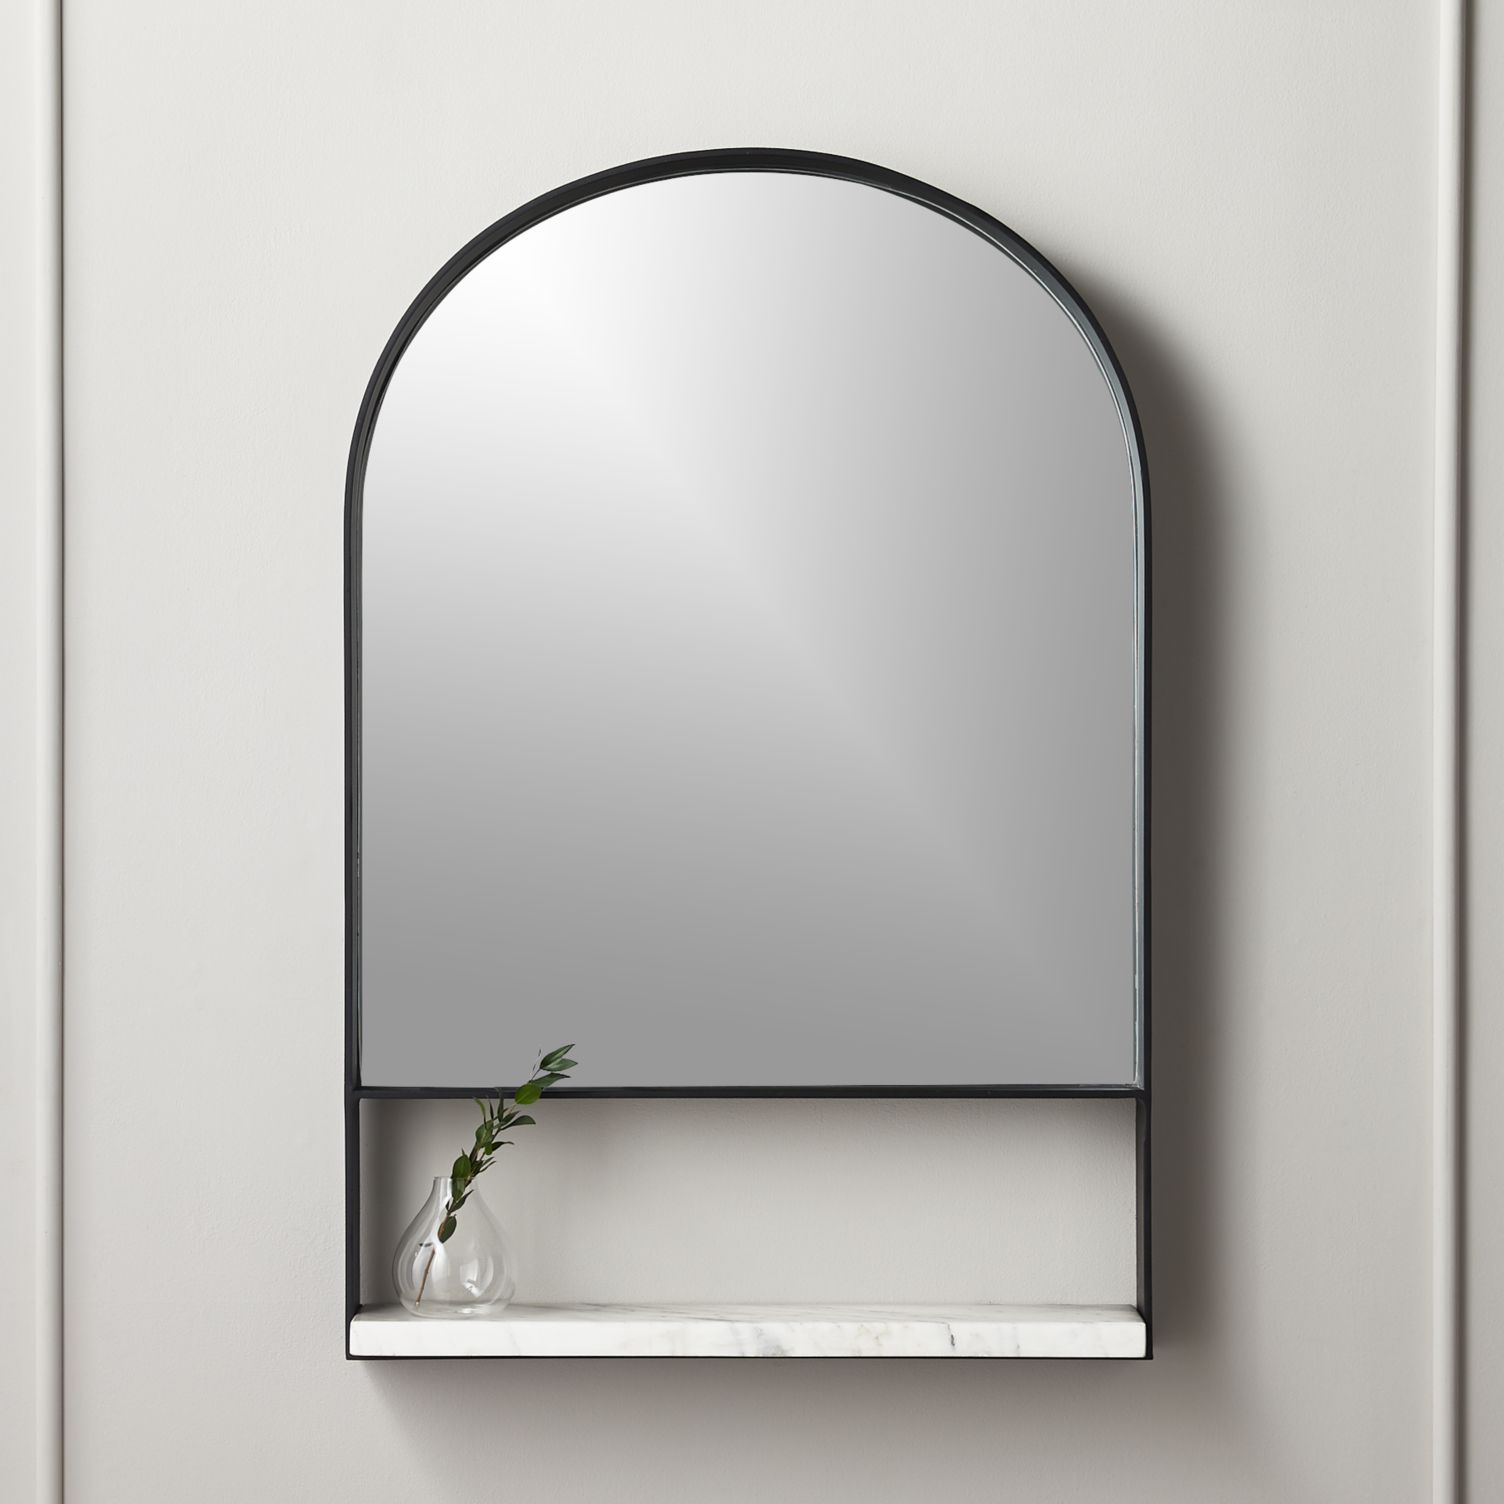 Arched mirror with a ledge